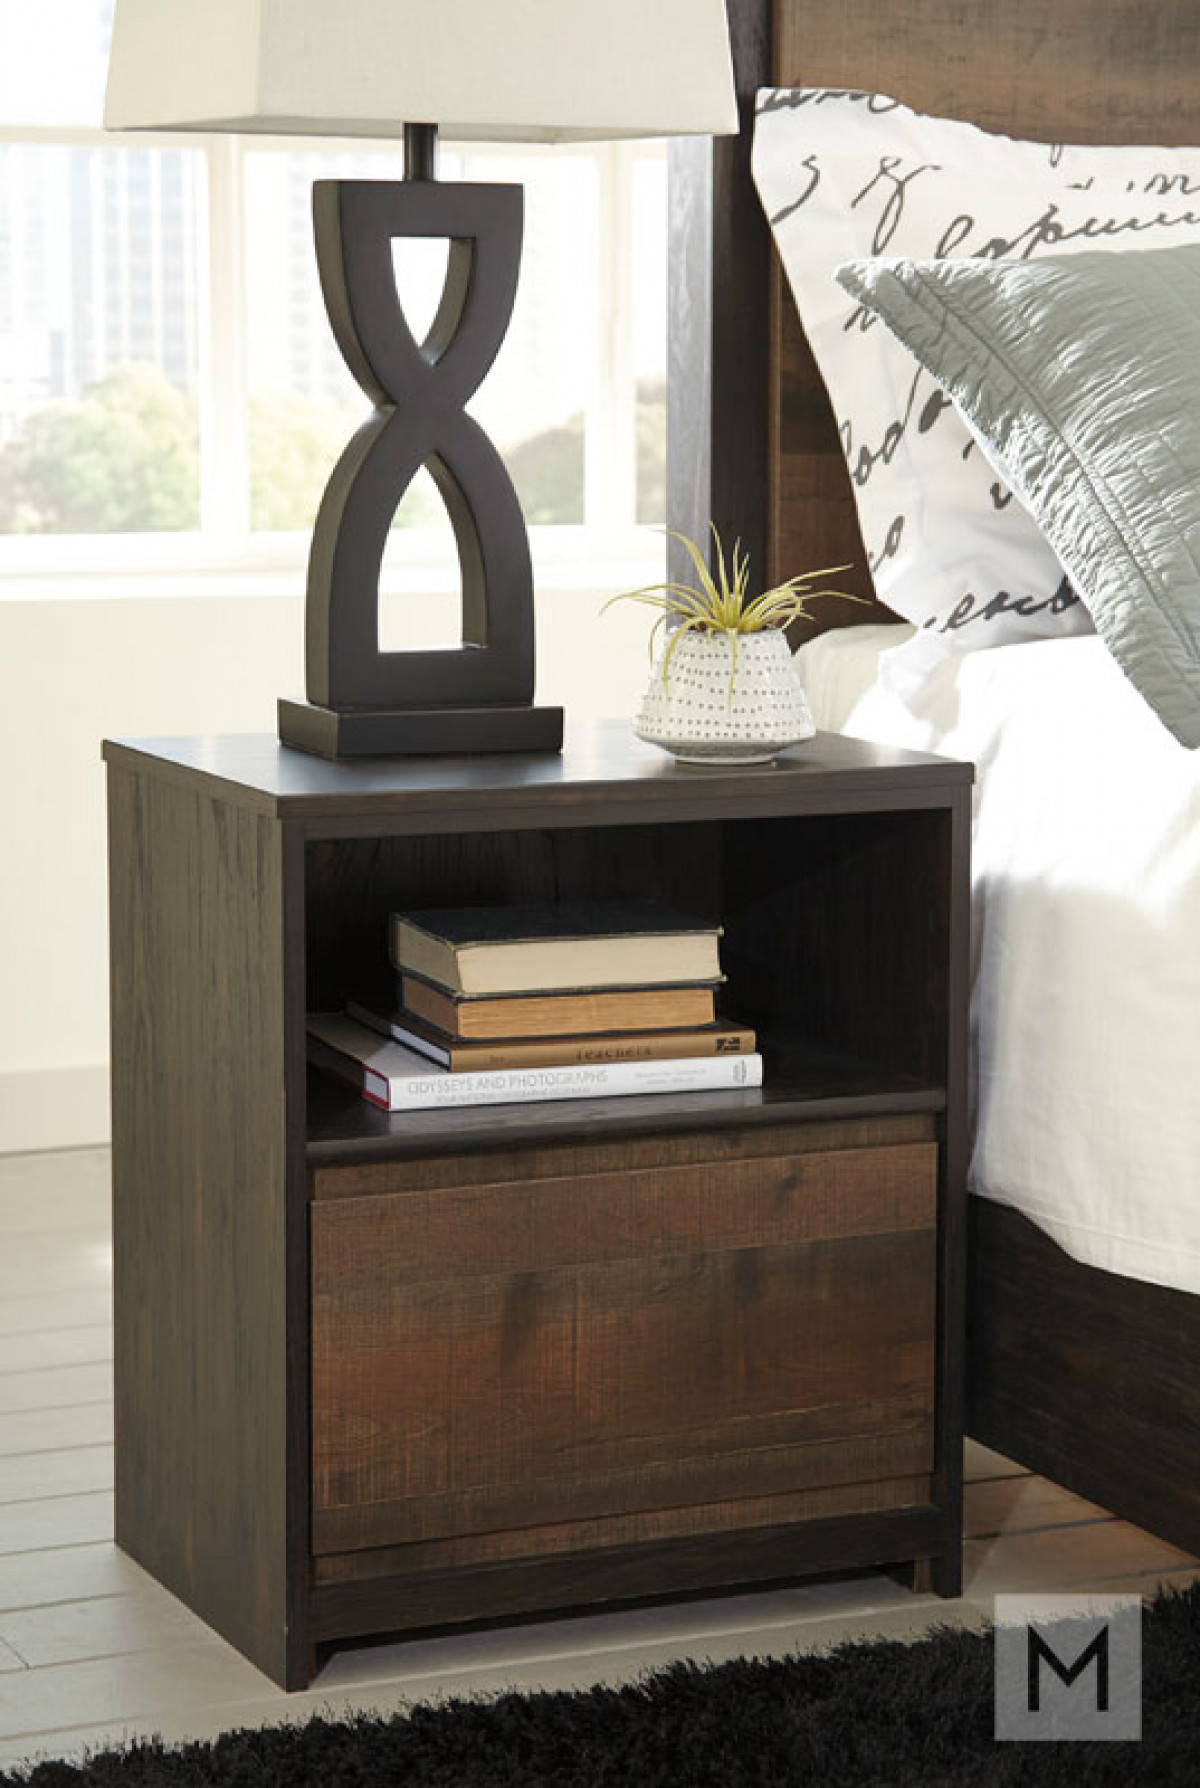 Windlore One Drawer Nightstand in Dark Brown with a Rustic Finish